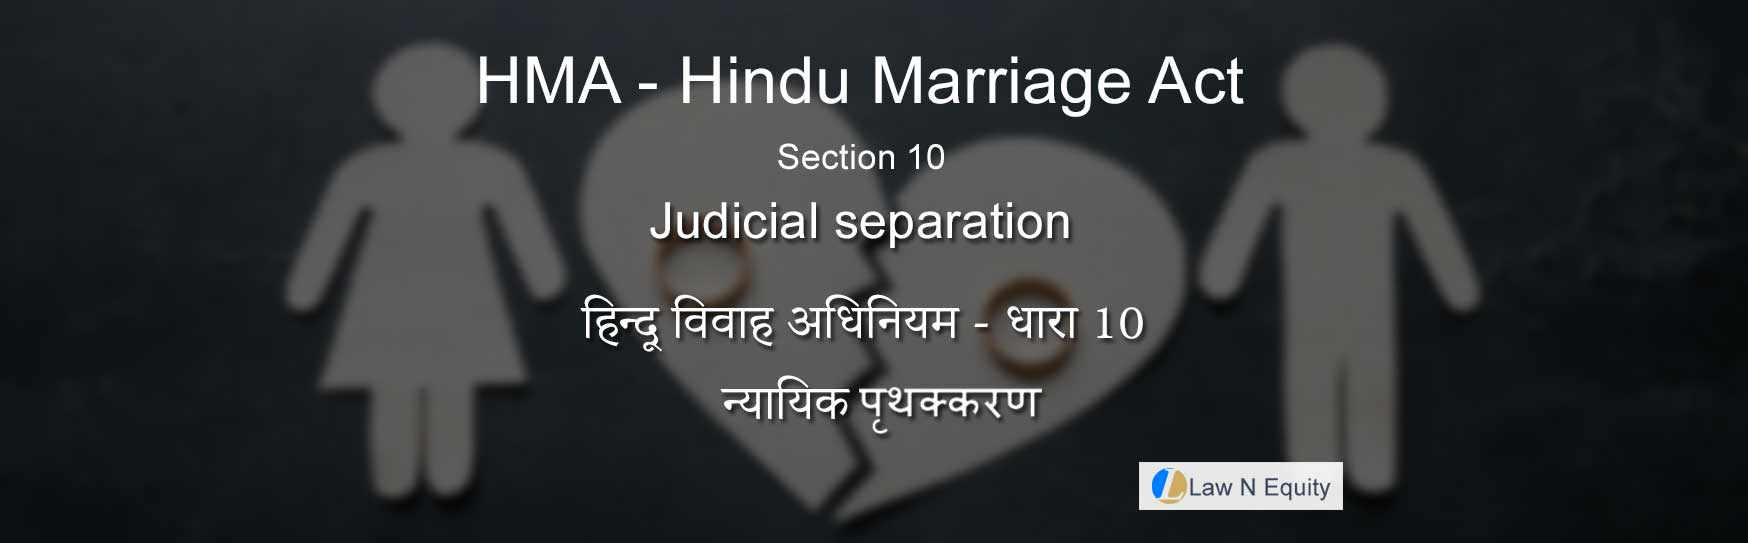 Hindu Marriage Act(HMA) Section 10